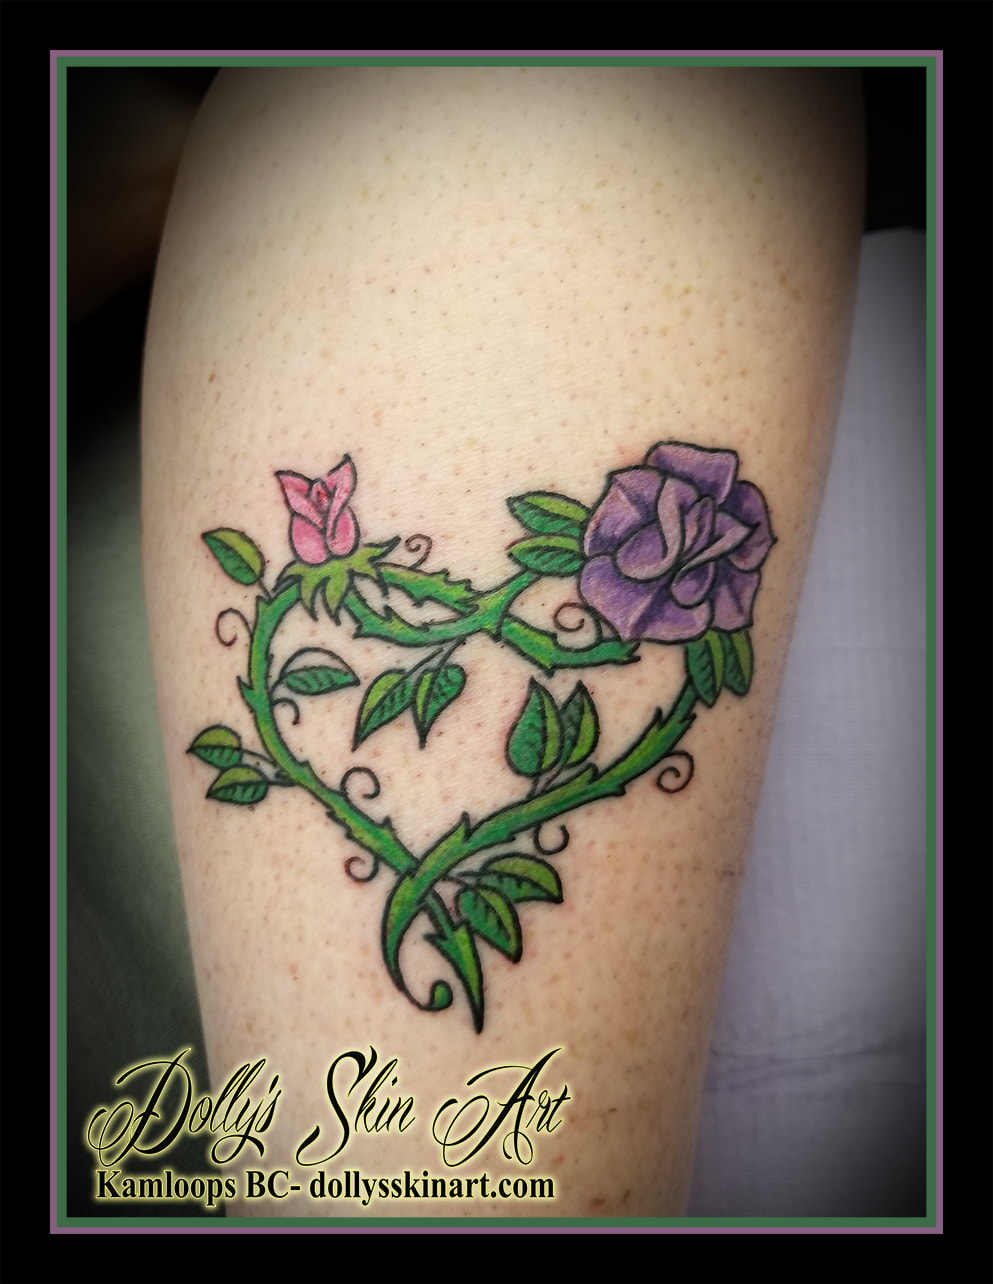 leg tattoo flower rose vine leaf green purple pink heart kamloops dolly's skin art